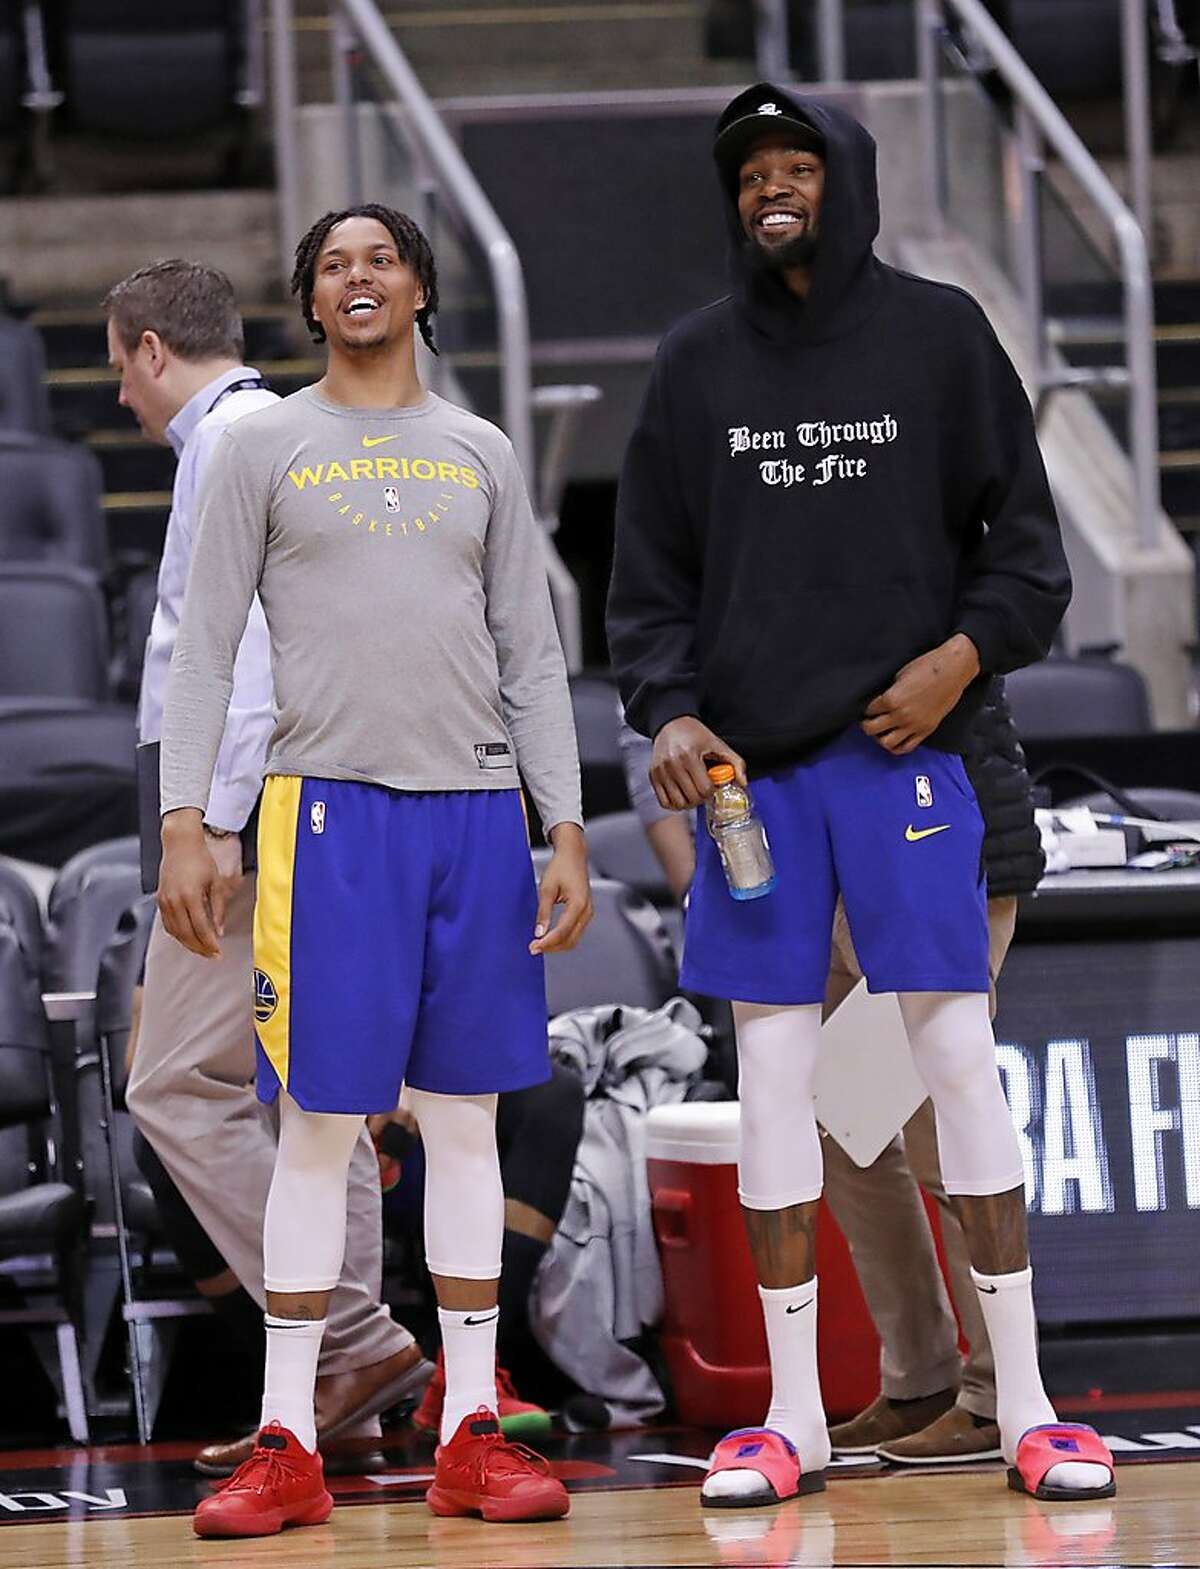 Golden State Warriors' Kevin Durant and Damion Lee during NBA Finals' practice at ScotiaBank Arena in Toronto, Ontario, Canada, on Saturday, June 1, 2019.